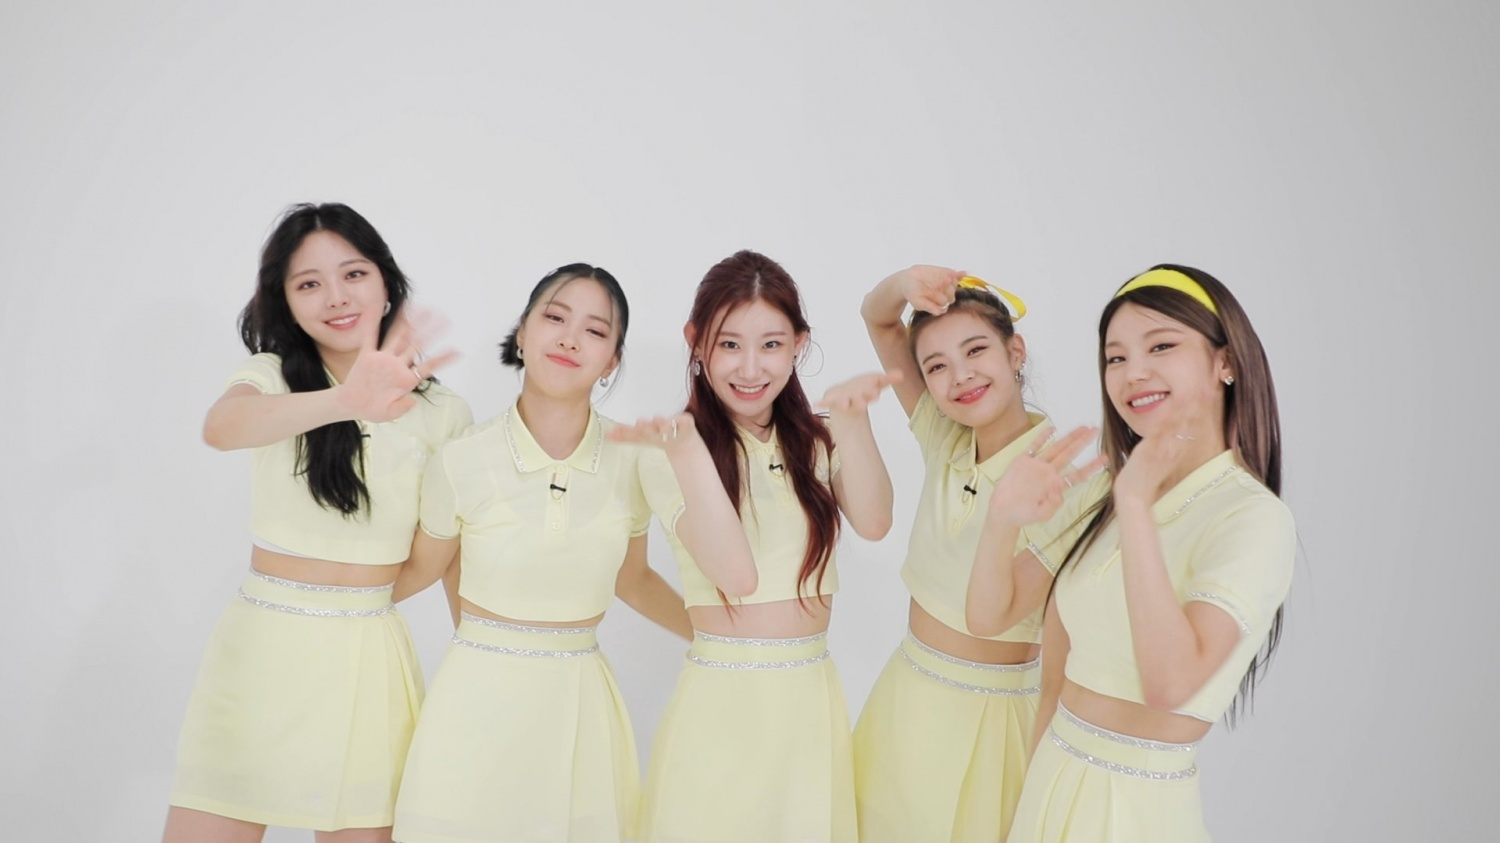 ITZY Chaeryeong, 'Studio Dance' Selected as Artist of August